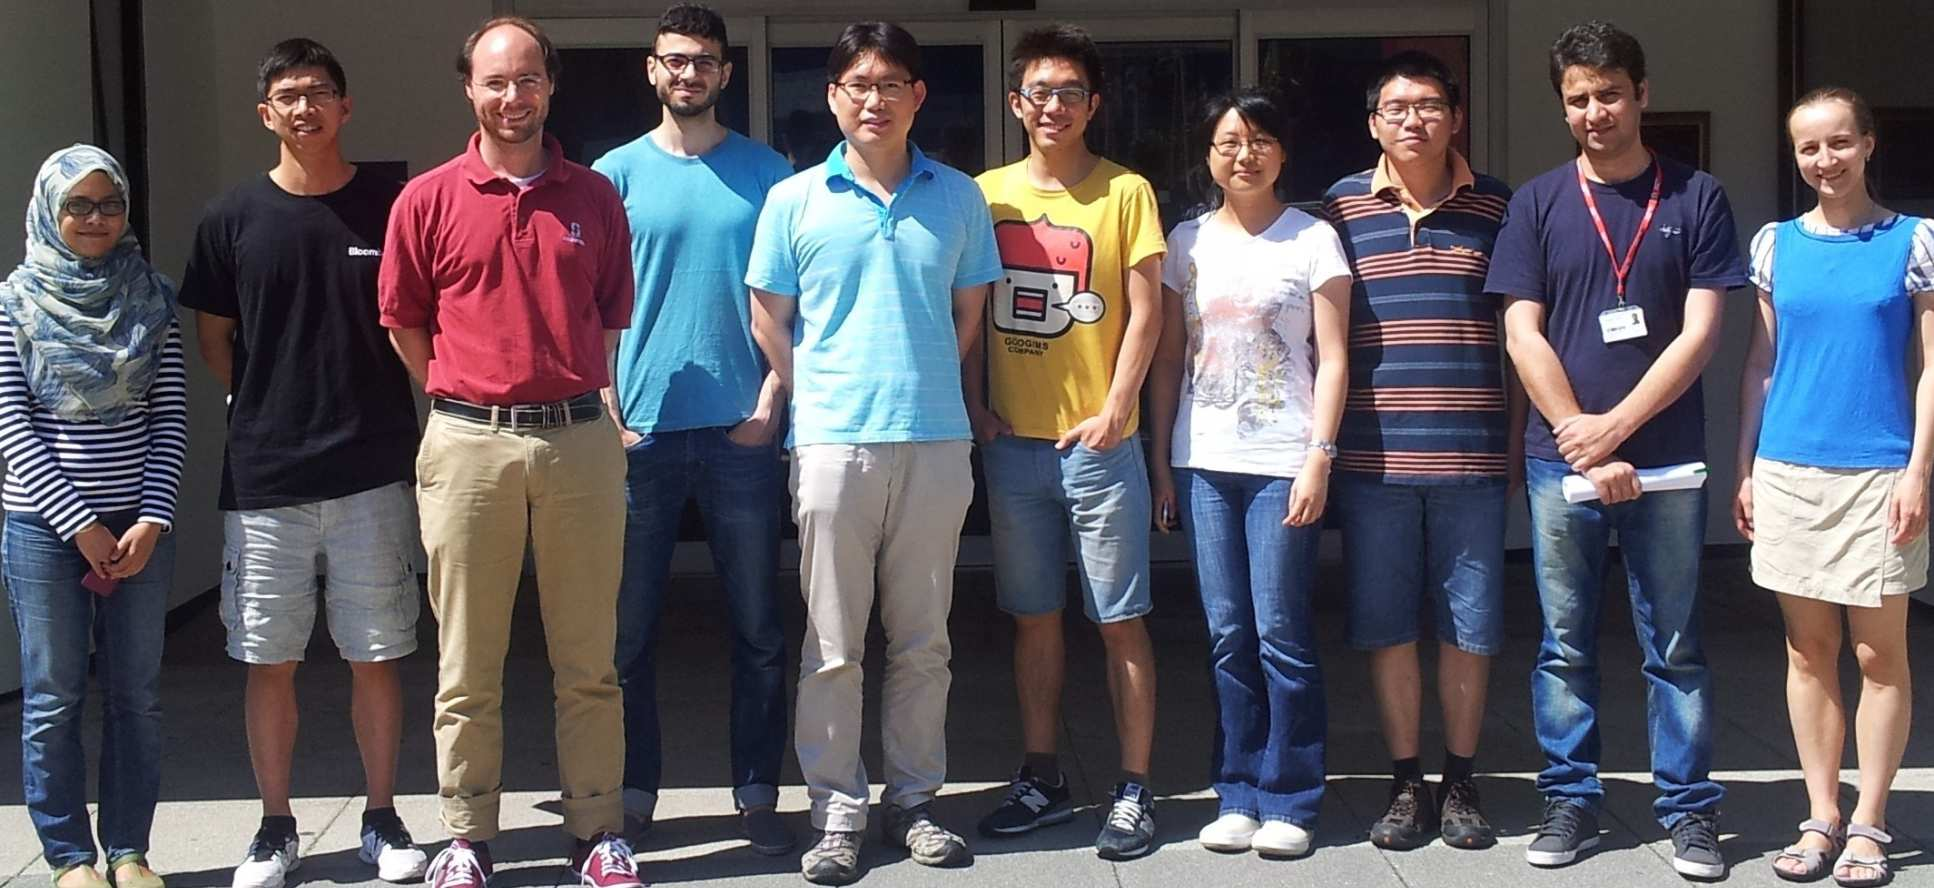 Dr Bruno Clerckx (third from left) and his research group